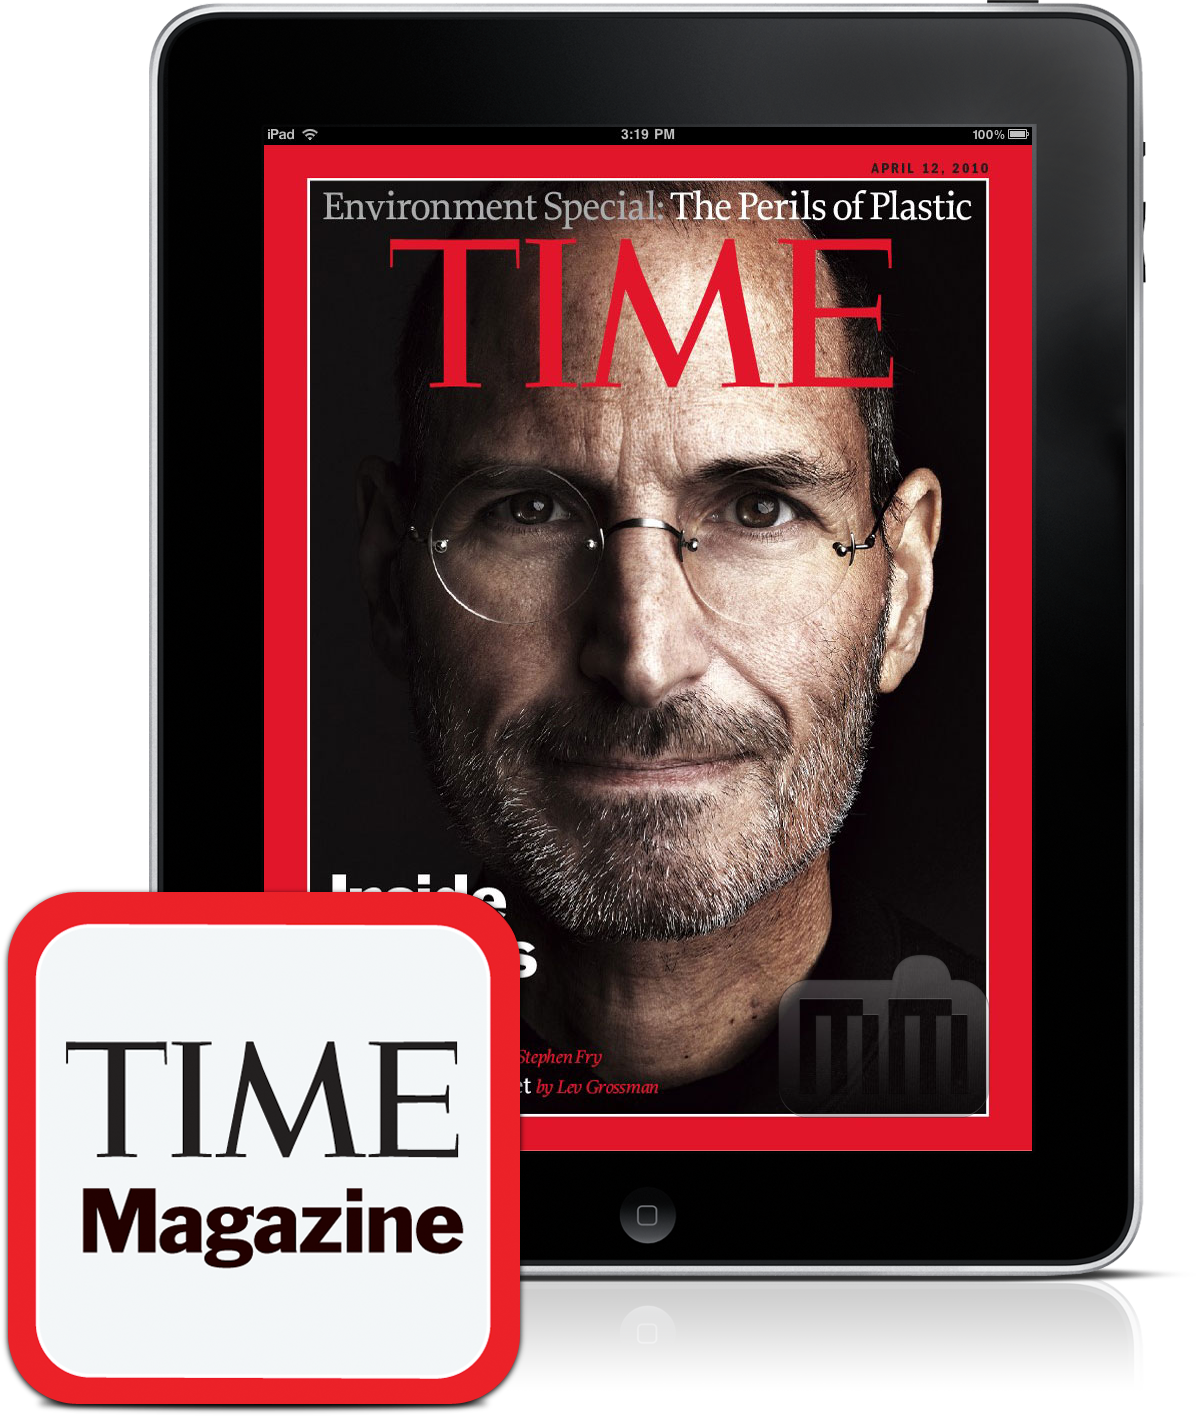 Time Magazine - iPad